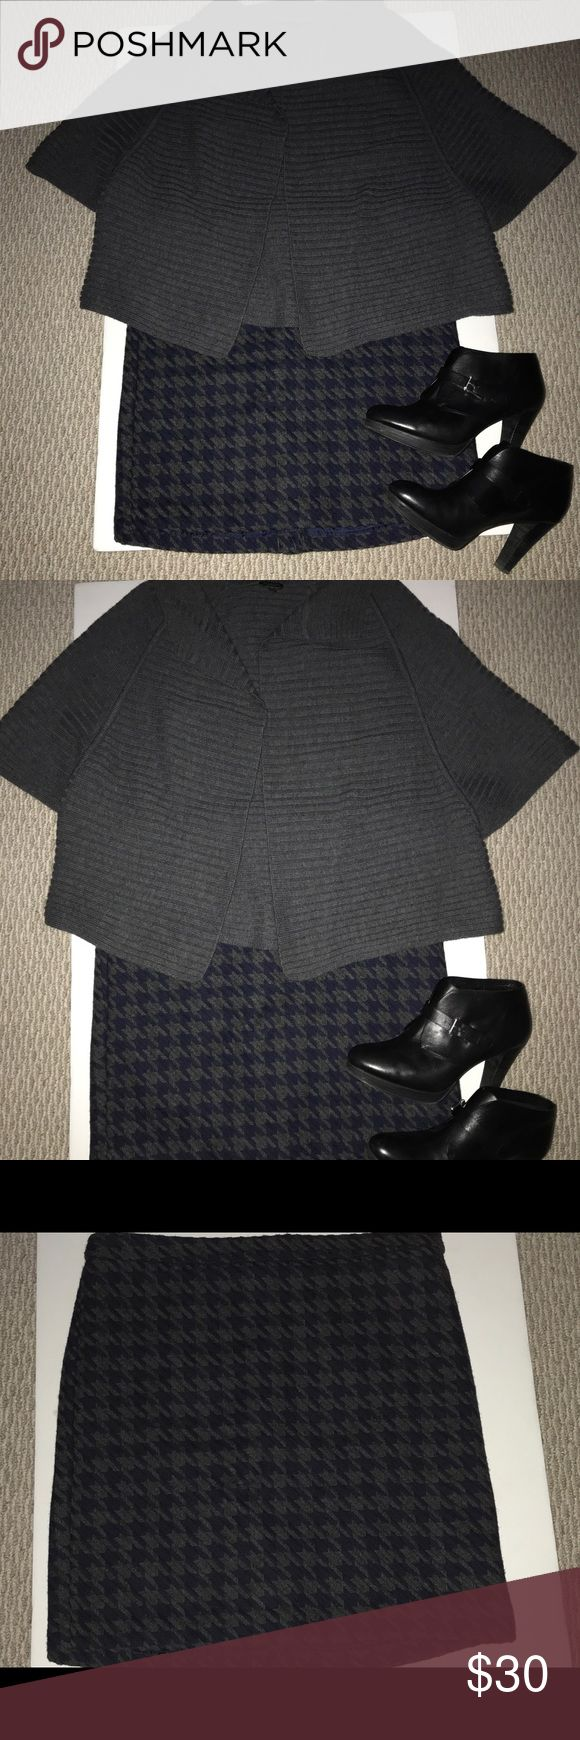 """Tommy Hilfiger wool blend houndstooth skirt sz 12 Tommy Hilfiger Black Gray Large Houndstooth Print Wool Blend Pencil Skirt size  12. This is a super cute skirt perfect for fall and winter. The fabric is 42# polyester 40% wool and 15% acrylic. It has a rear zipper and hook closure and a 6"""" back split. The skirt measures 20"""" long and the waist is approx 36"""". Great condition. Tommy Hilfiger Skirts Pencil"""